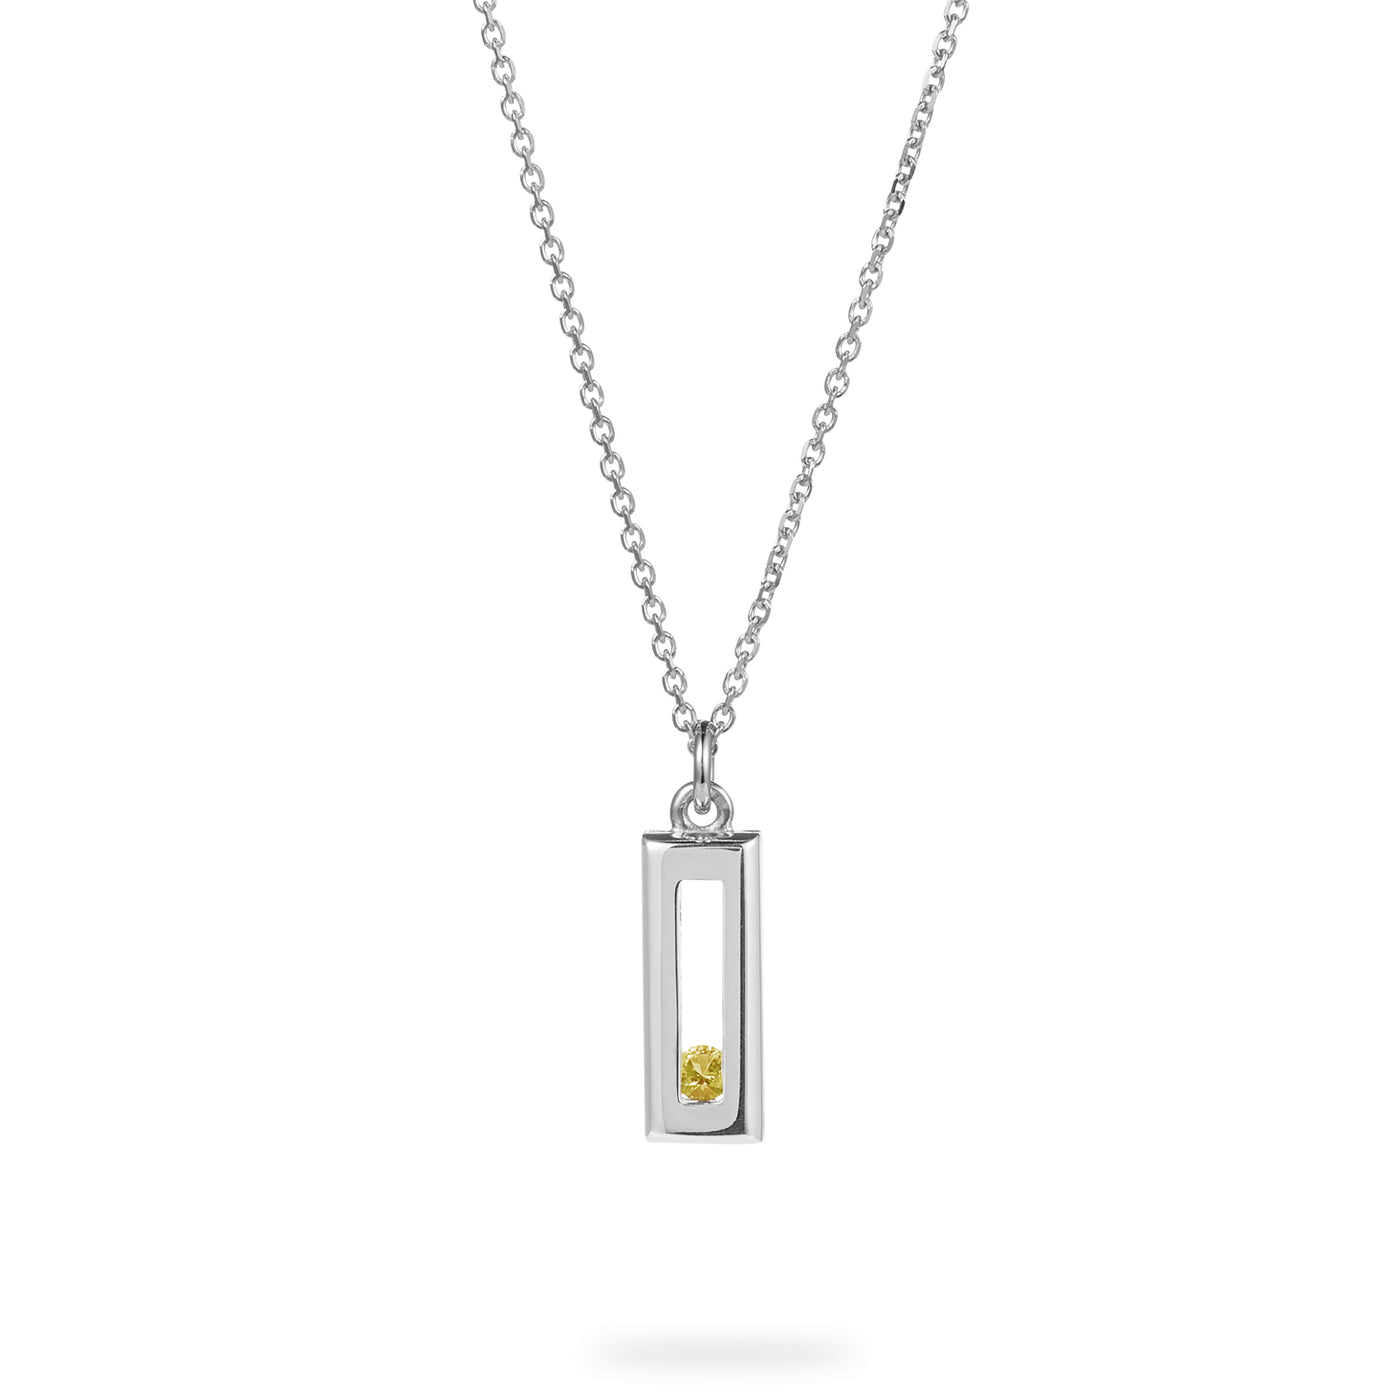 Luke Rose Jewellery Silver Sliding Rock Necklace